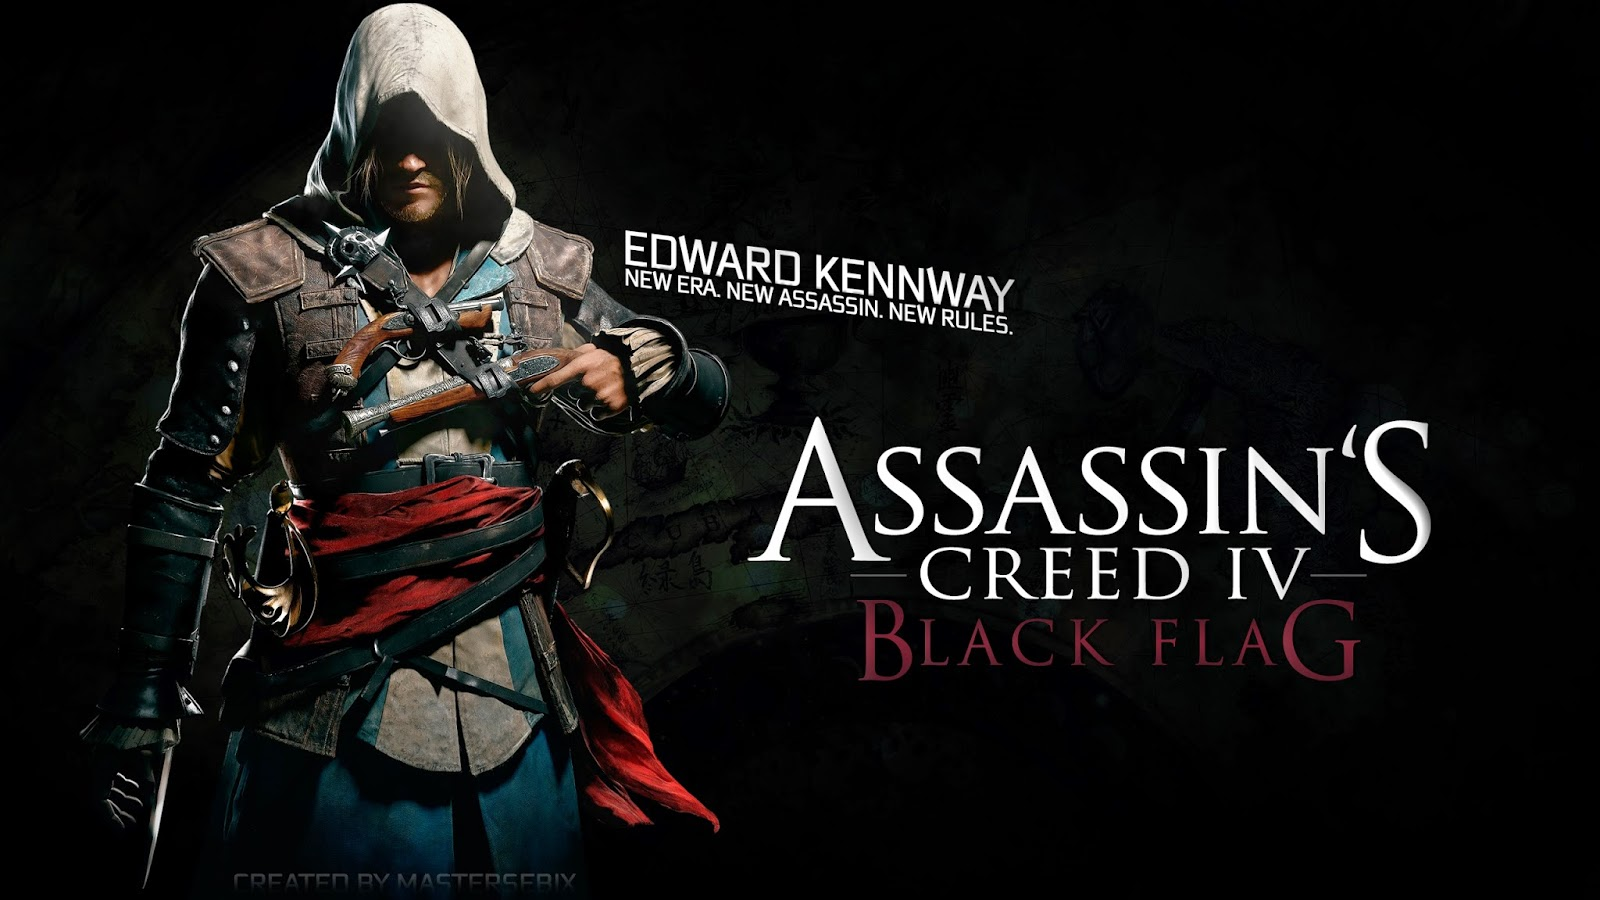 WallpapersKu: Assassin's Creed IV: Black Flag Wallpapers